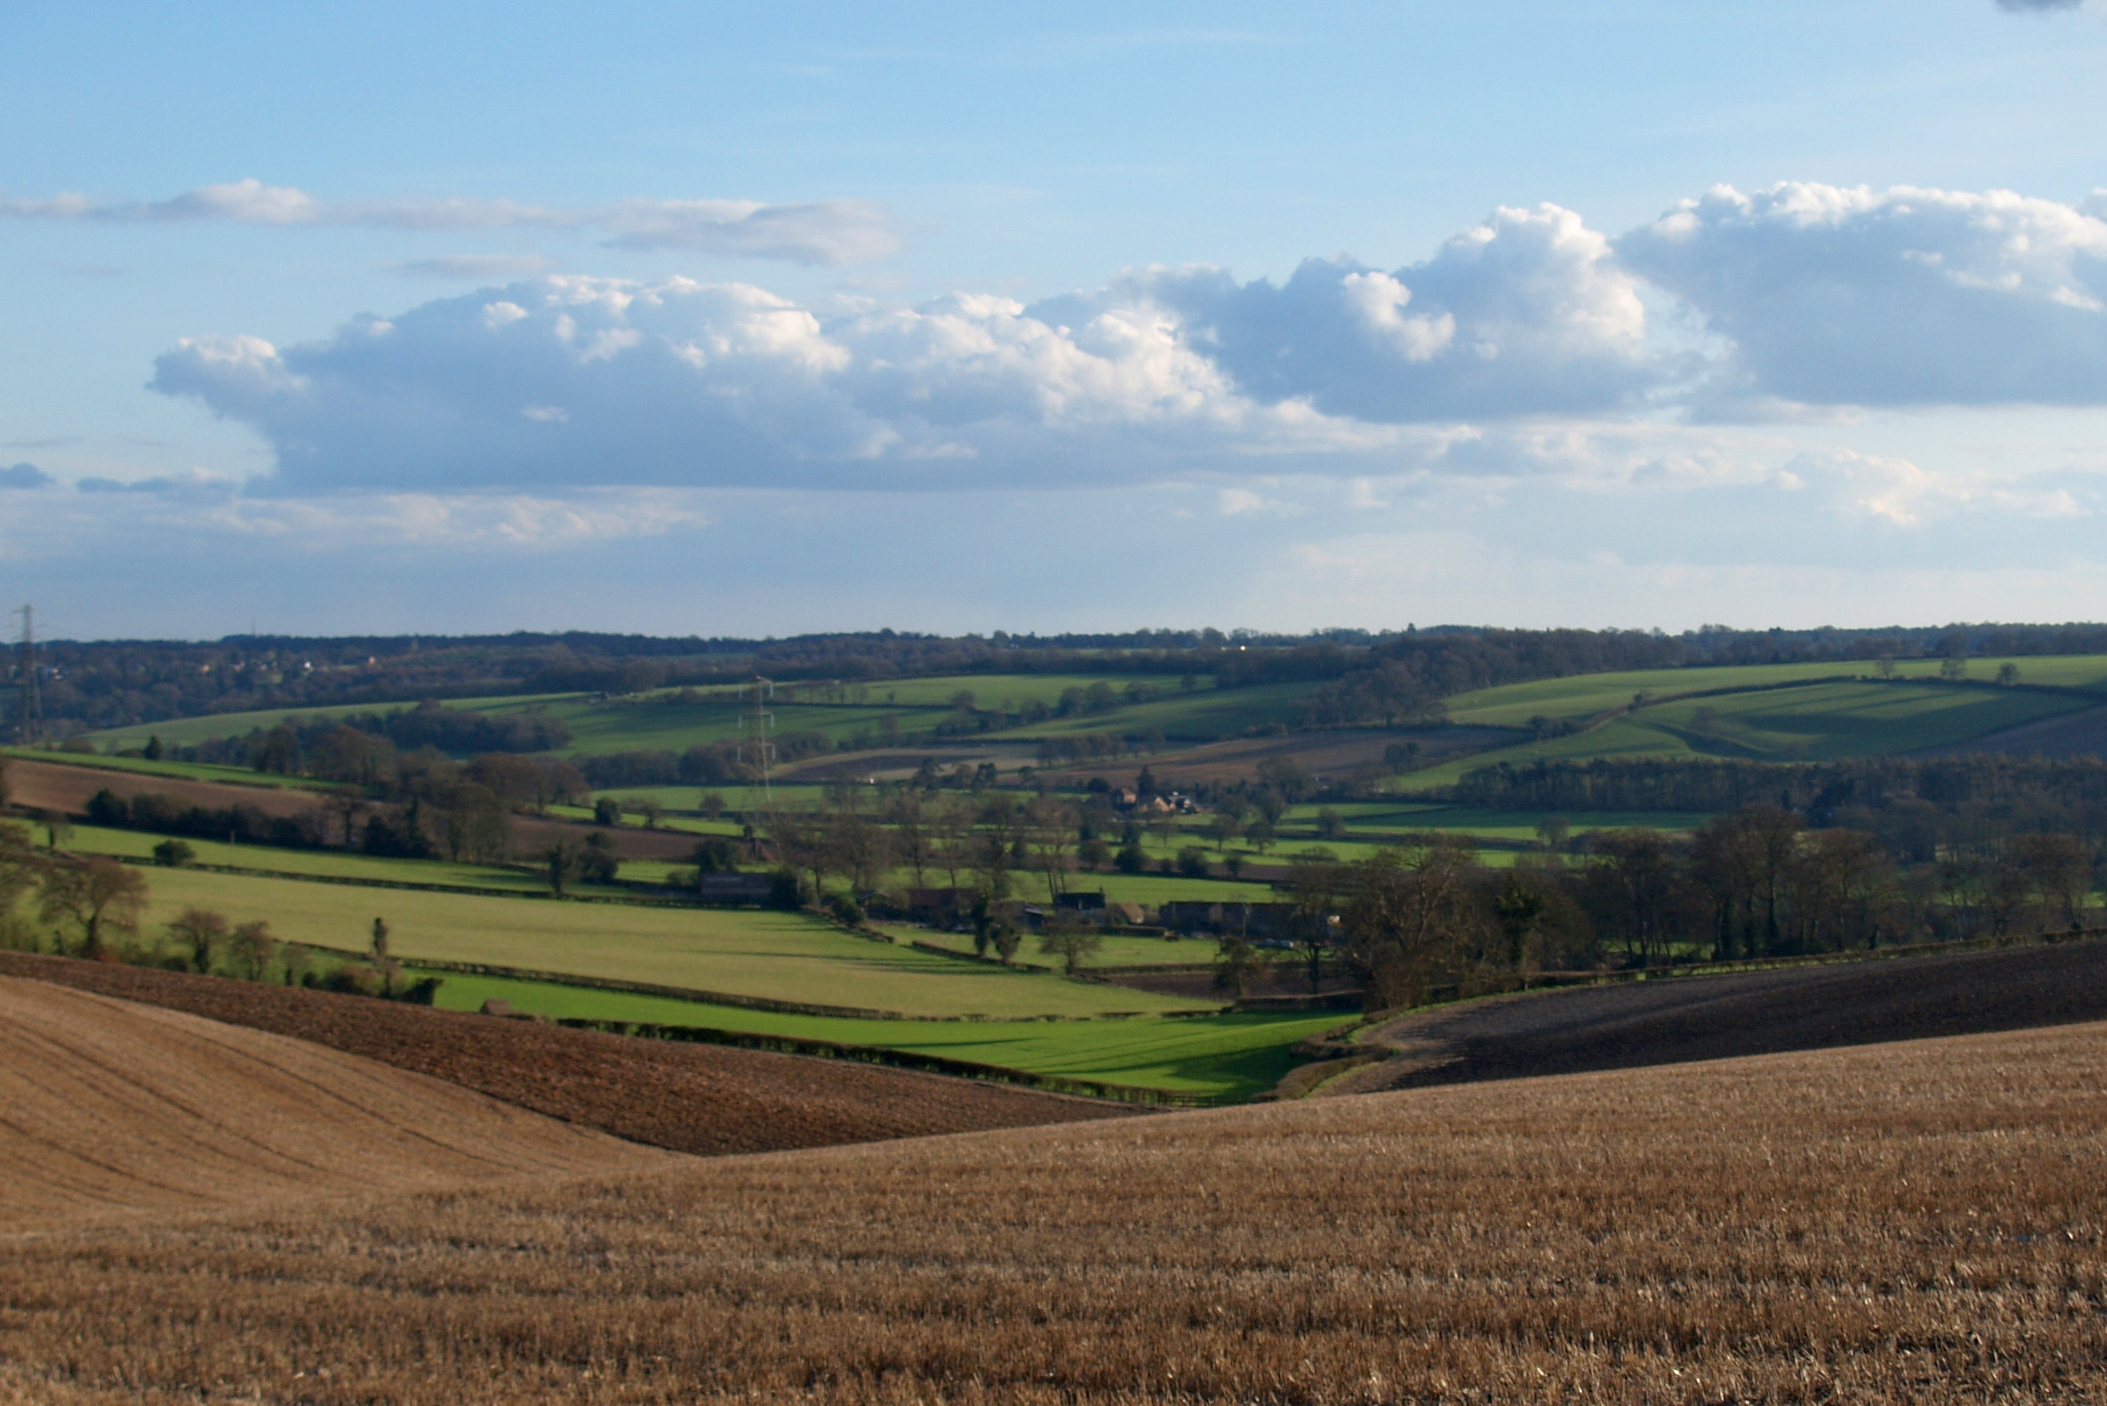 LAND - Land With or Without Planning Consent, Land Assembly, Strategic Land